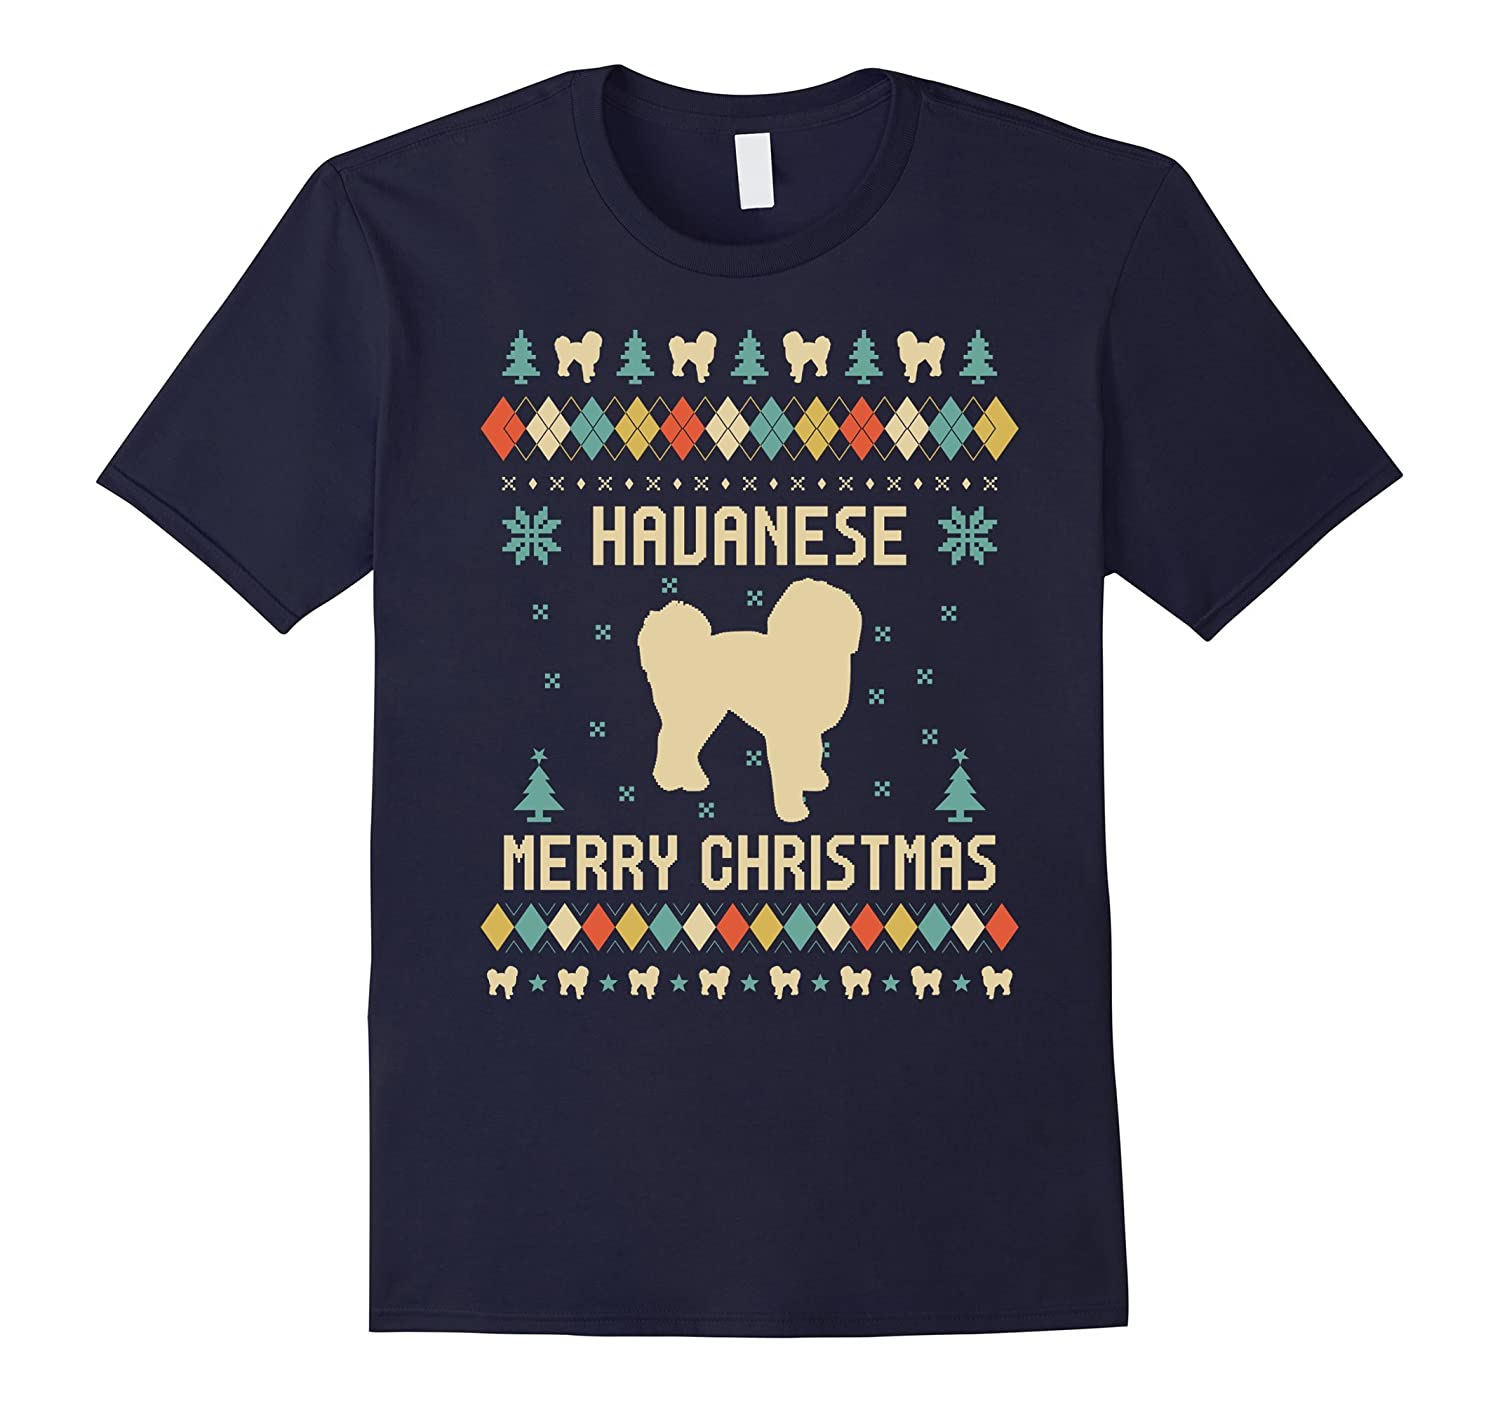 Havanese Ugly Christmas Sweater T-shirt Gift For Xmas-ANZ